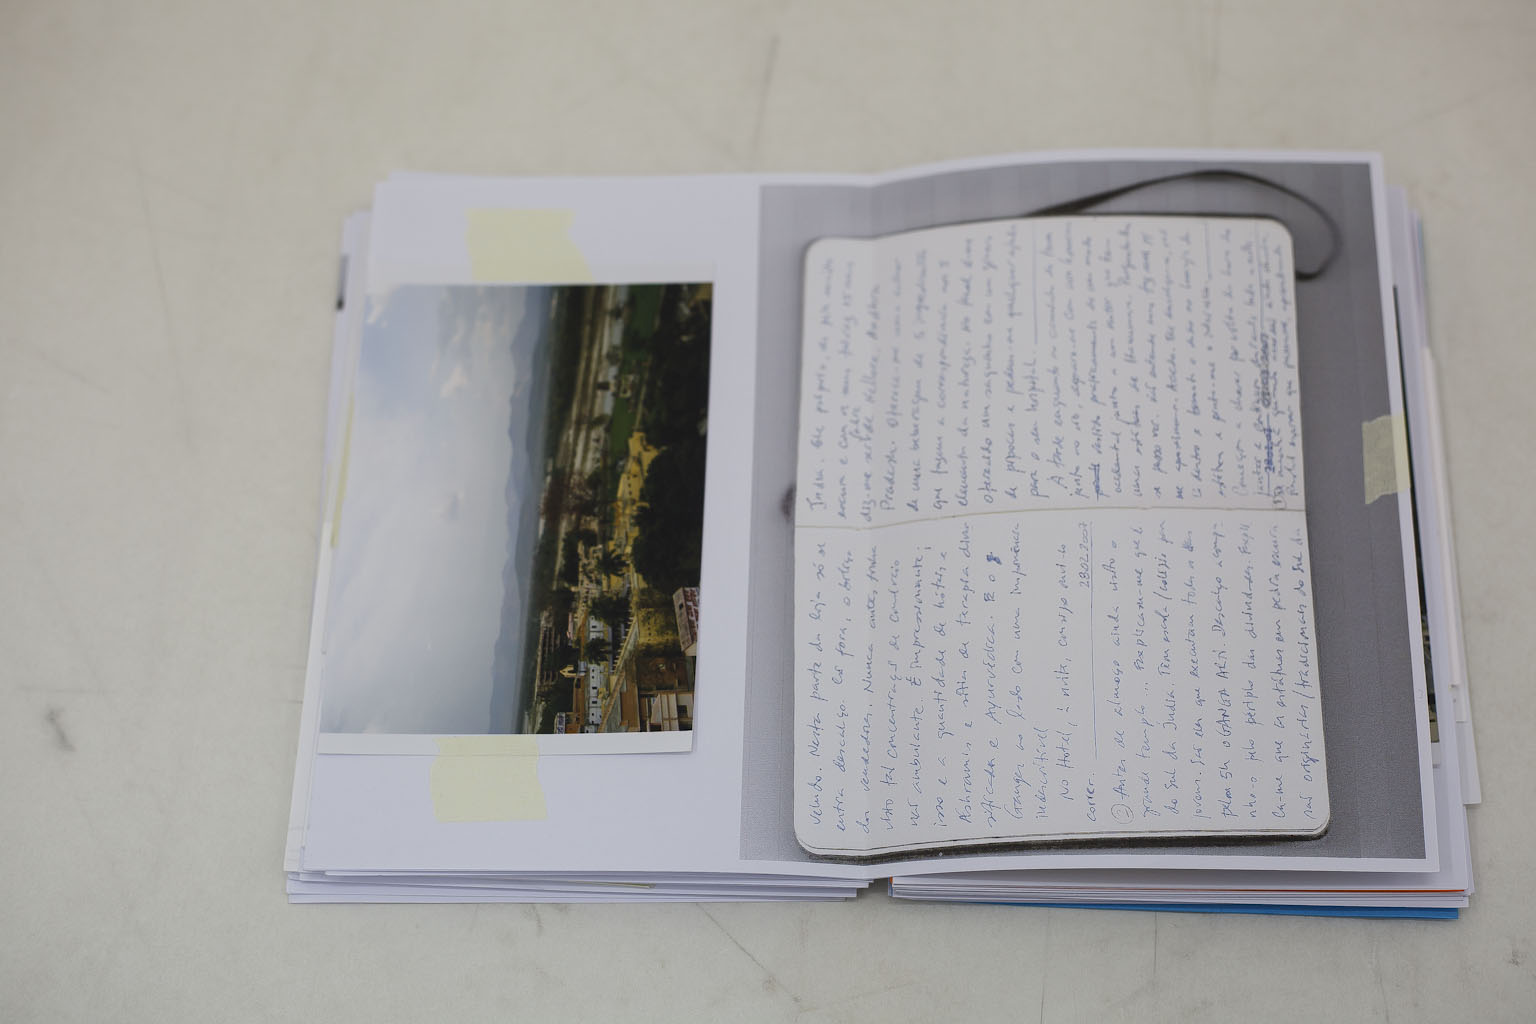 paula-roush-pageturner-workshop-lisbon-photobook-fair-67